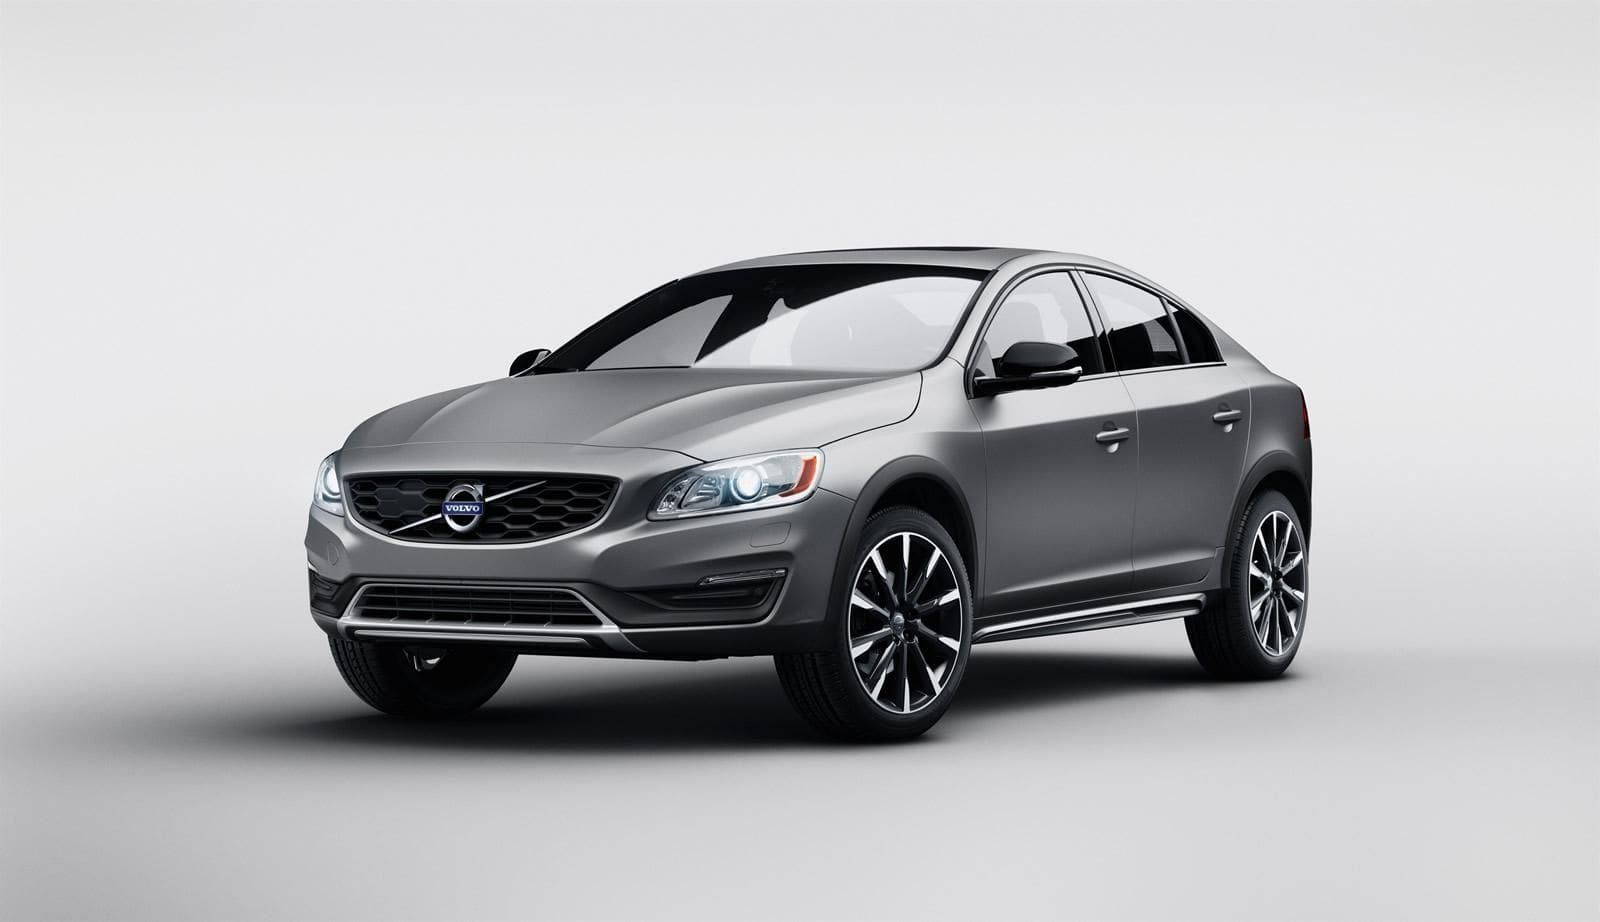 Volvo S60 Cross Country Launched at Rs 38.9 lakh